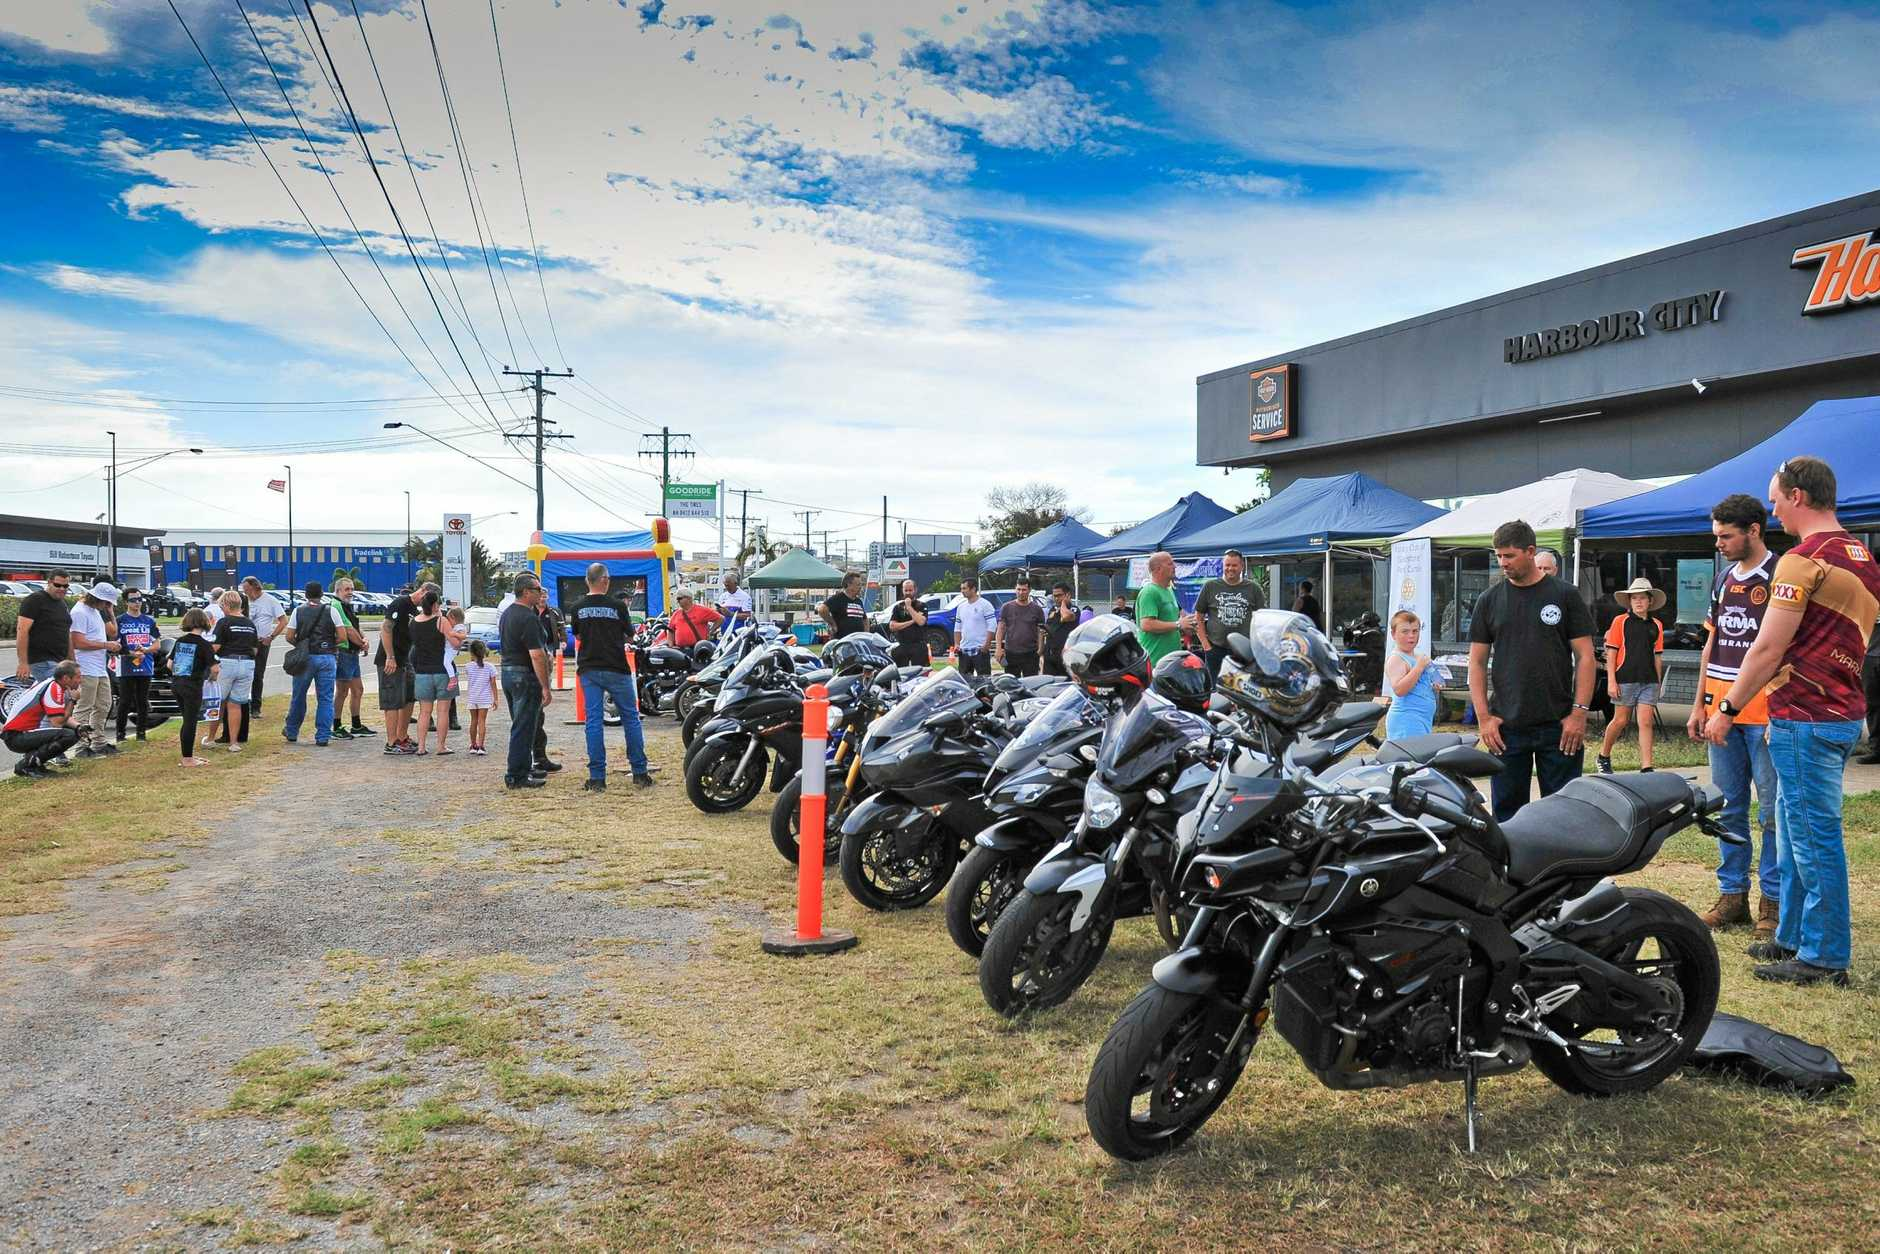 Ride to support suicide prevention from Gladstone to Raglan, finishing at Calliope with beers and bands.